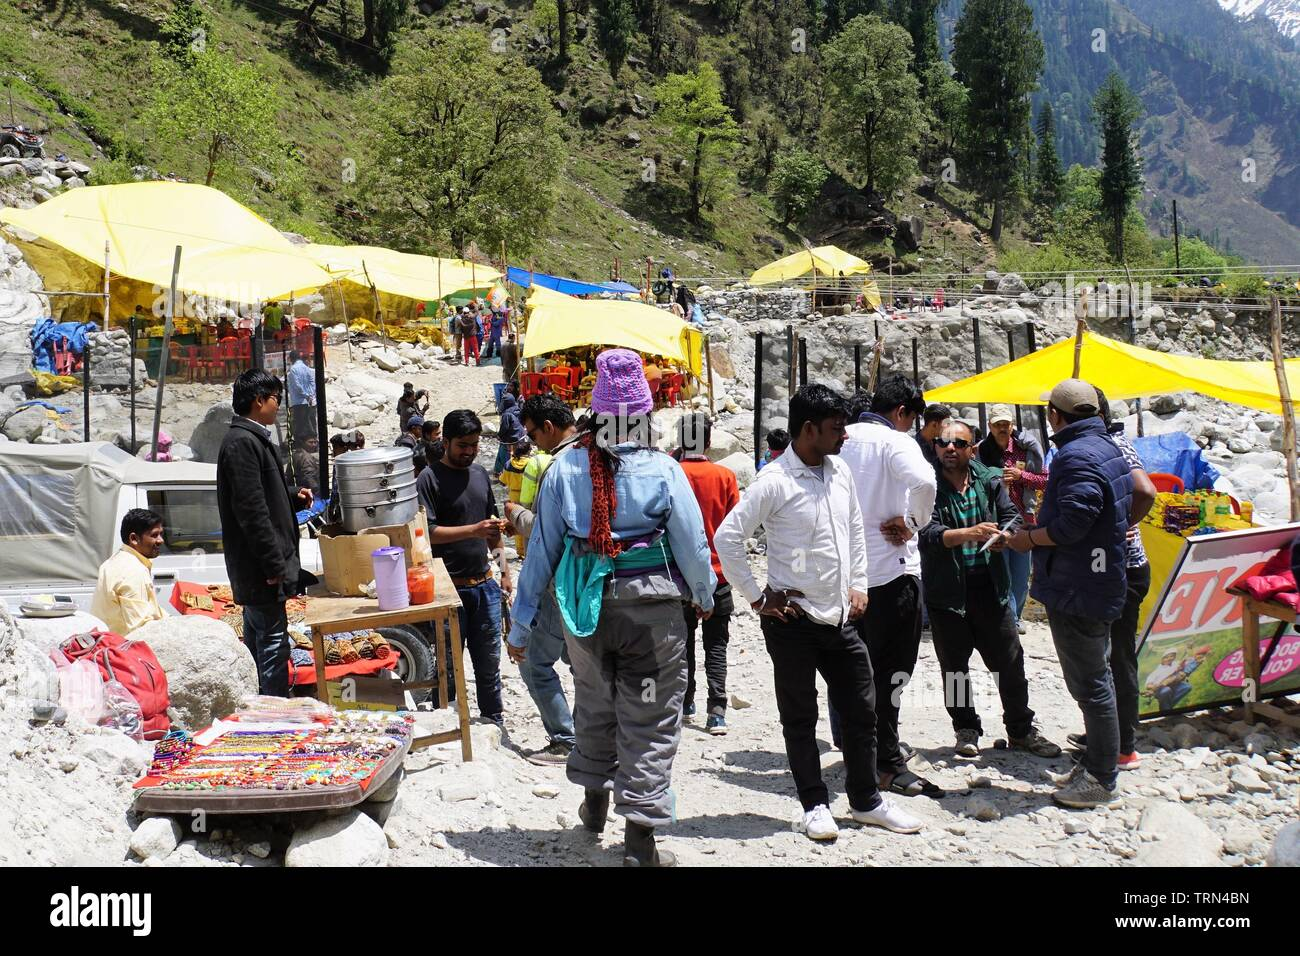 Tourists enjoying everything Solang Valley has to offer - Stock Image